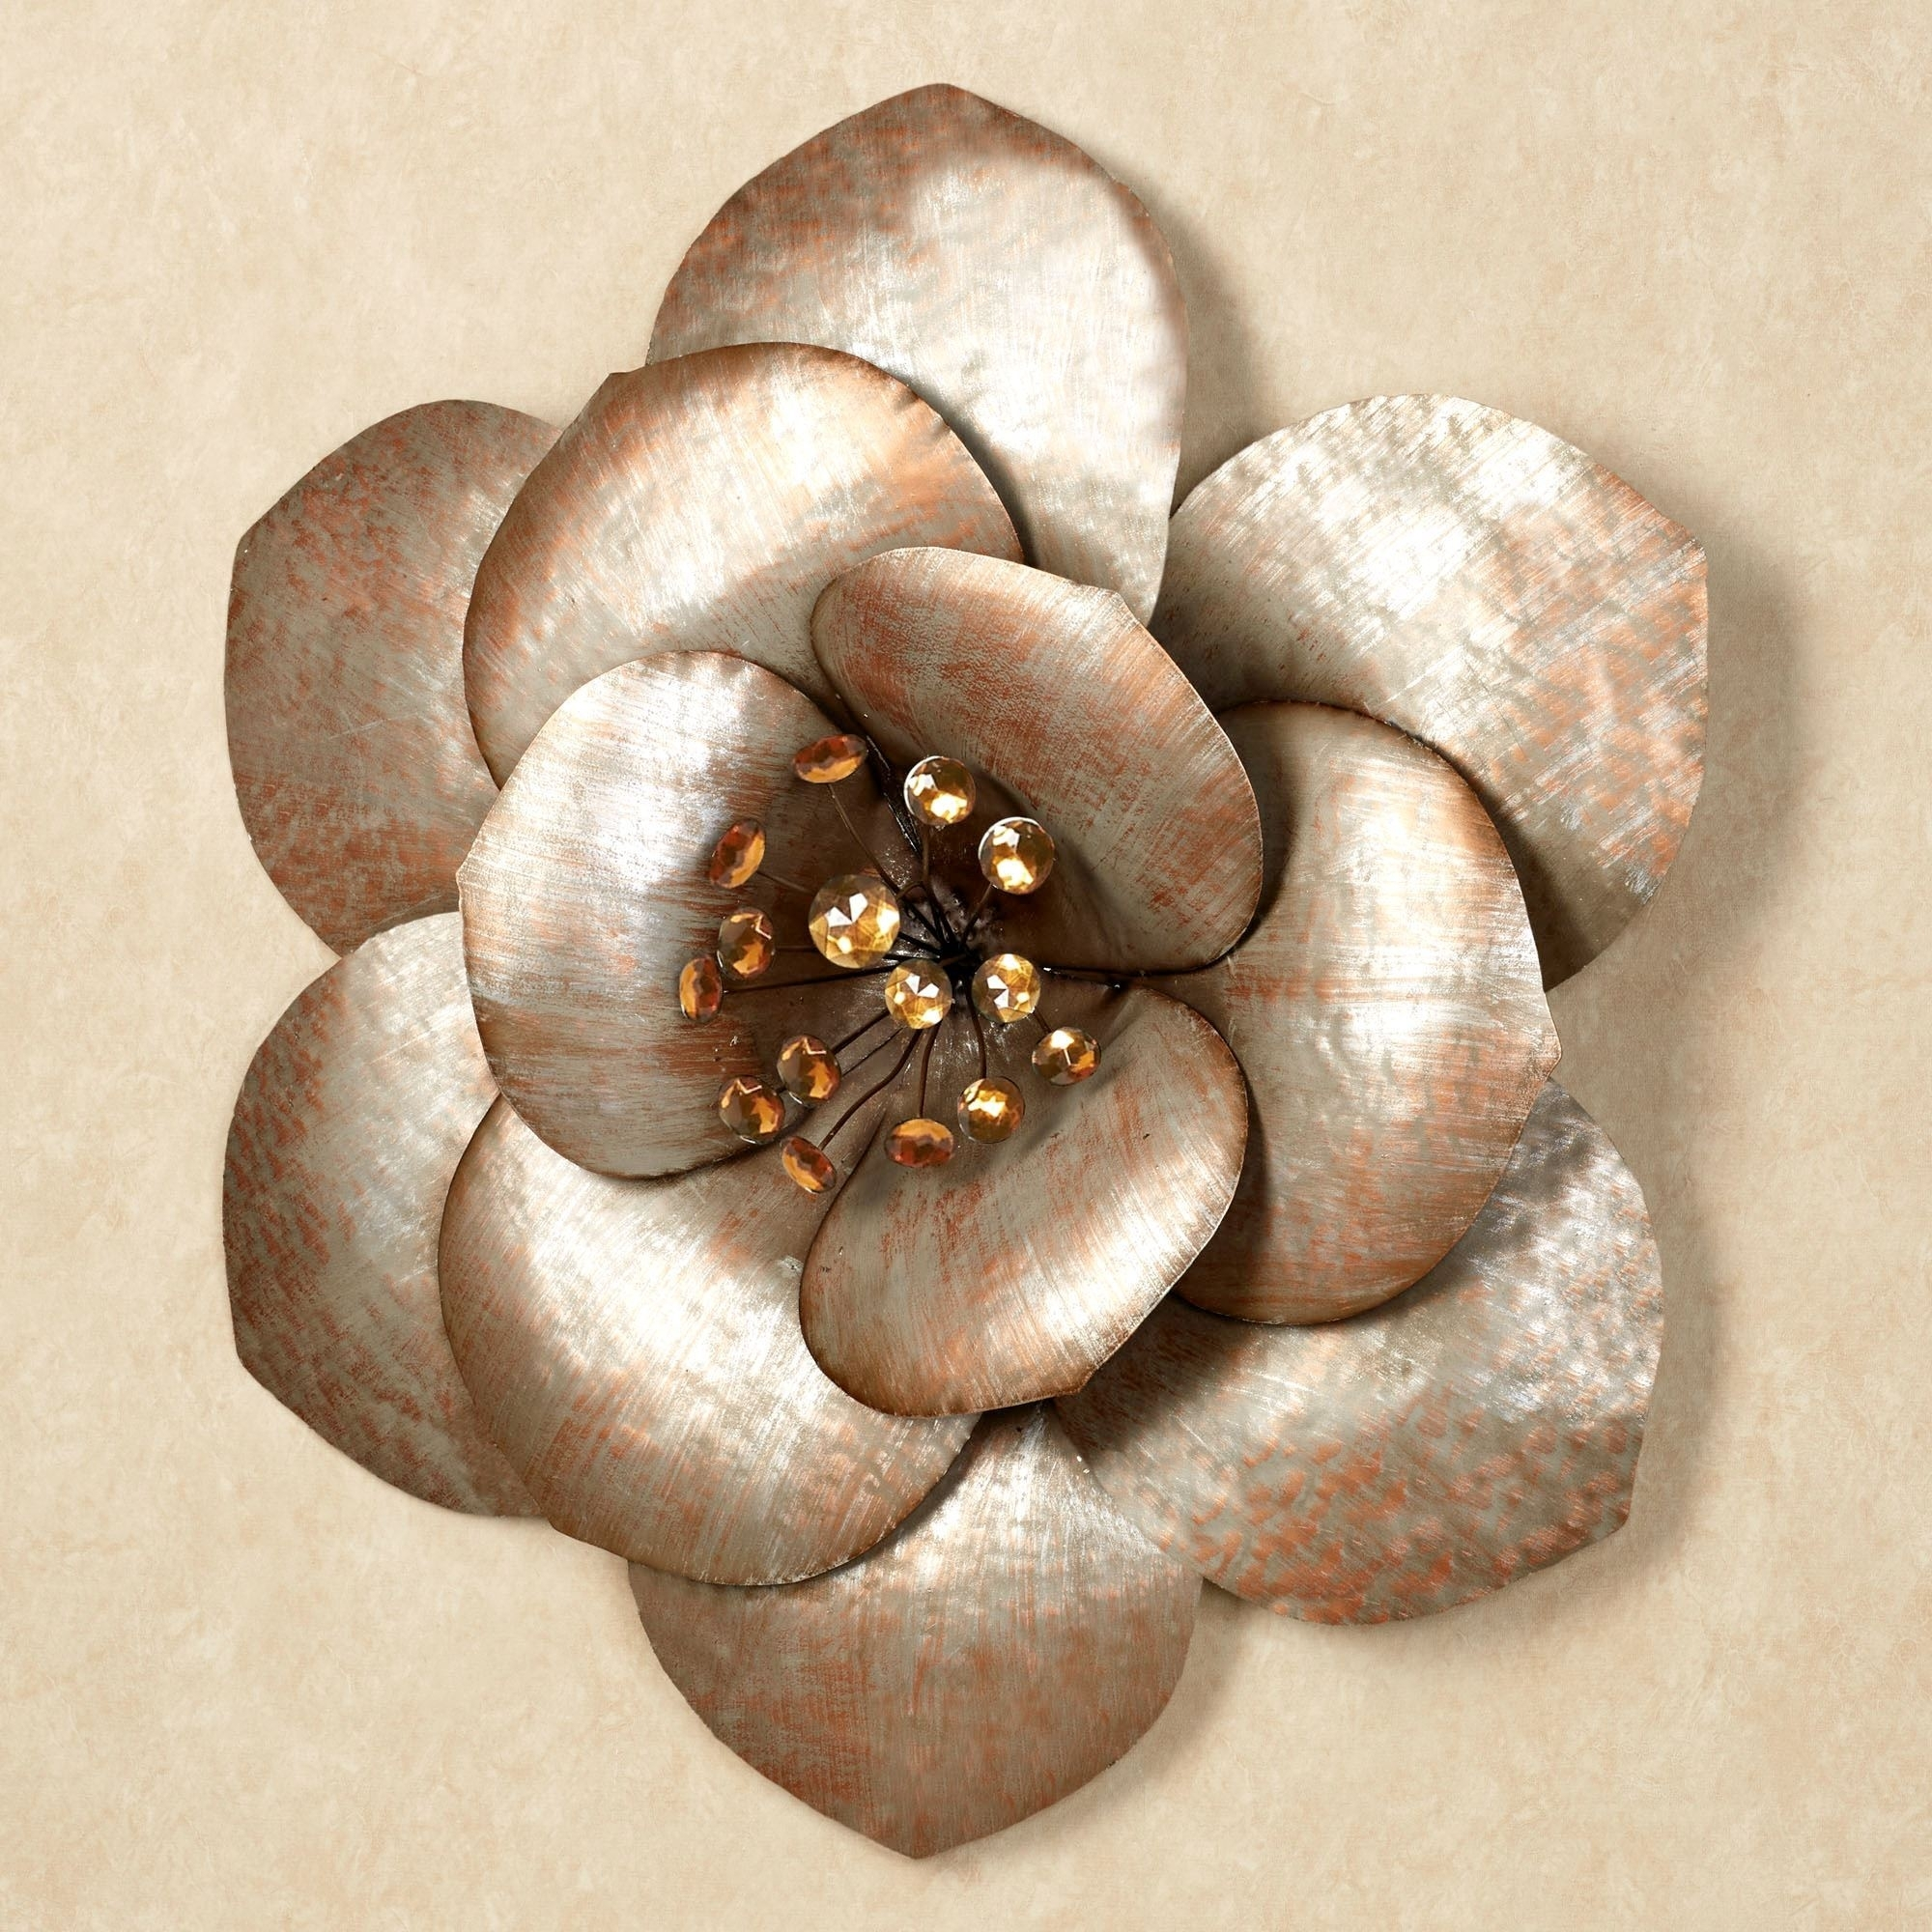 Fiore Gem Flower Blossom Metal Wall Art Pertaining To 2018 Metal Flower Wall Art (View 6 of 15)